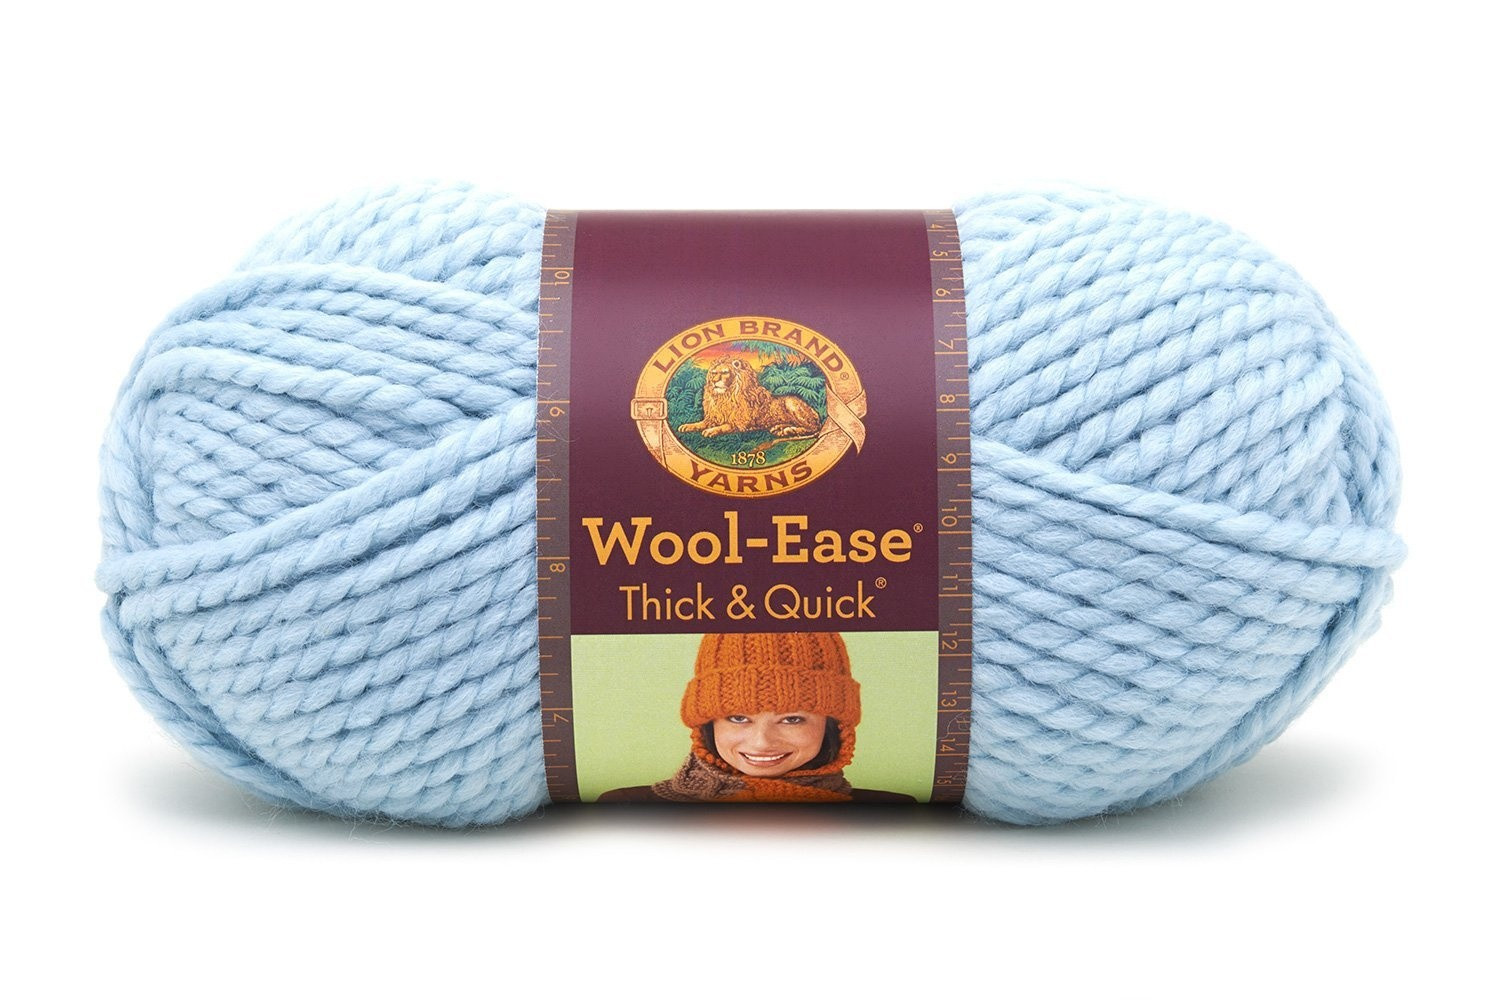 Wool Ease Thick and Quick Yarn Lovely Lion Brand Yarn 640 136f Wool Ease Thick and Quick Yarn Of Charming 46 Pictures Wool Ease Thick and Quick Yarn